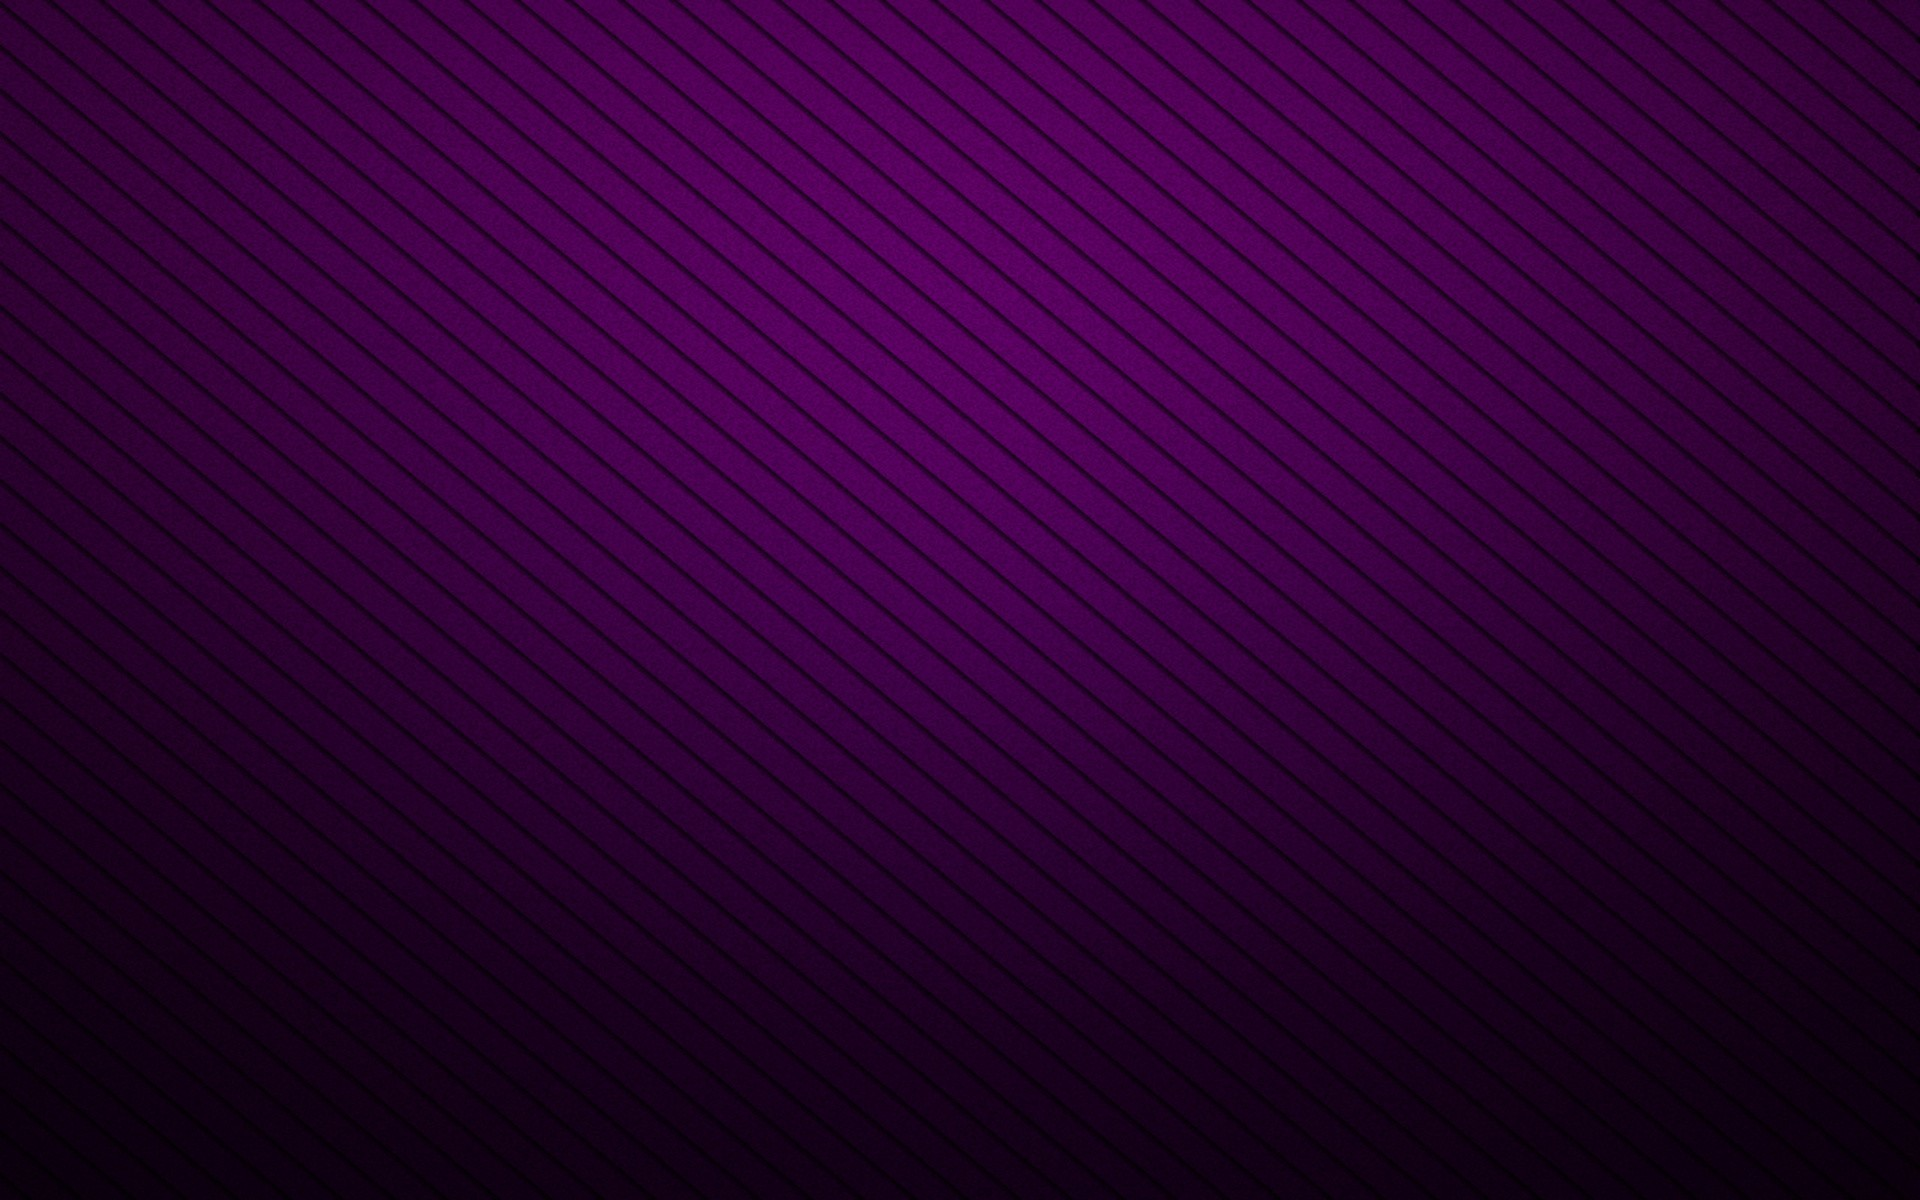 1920x1200 wallpaper abstract · purple